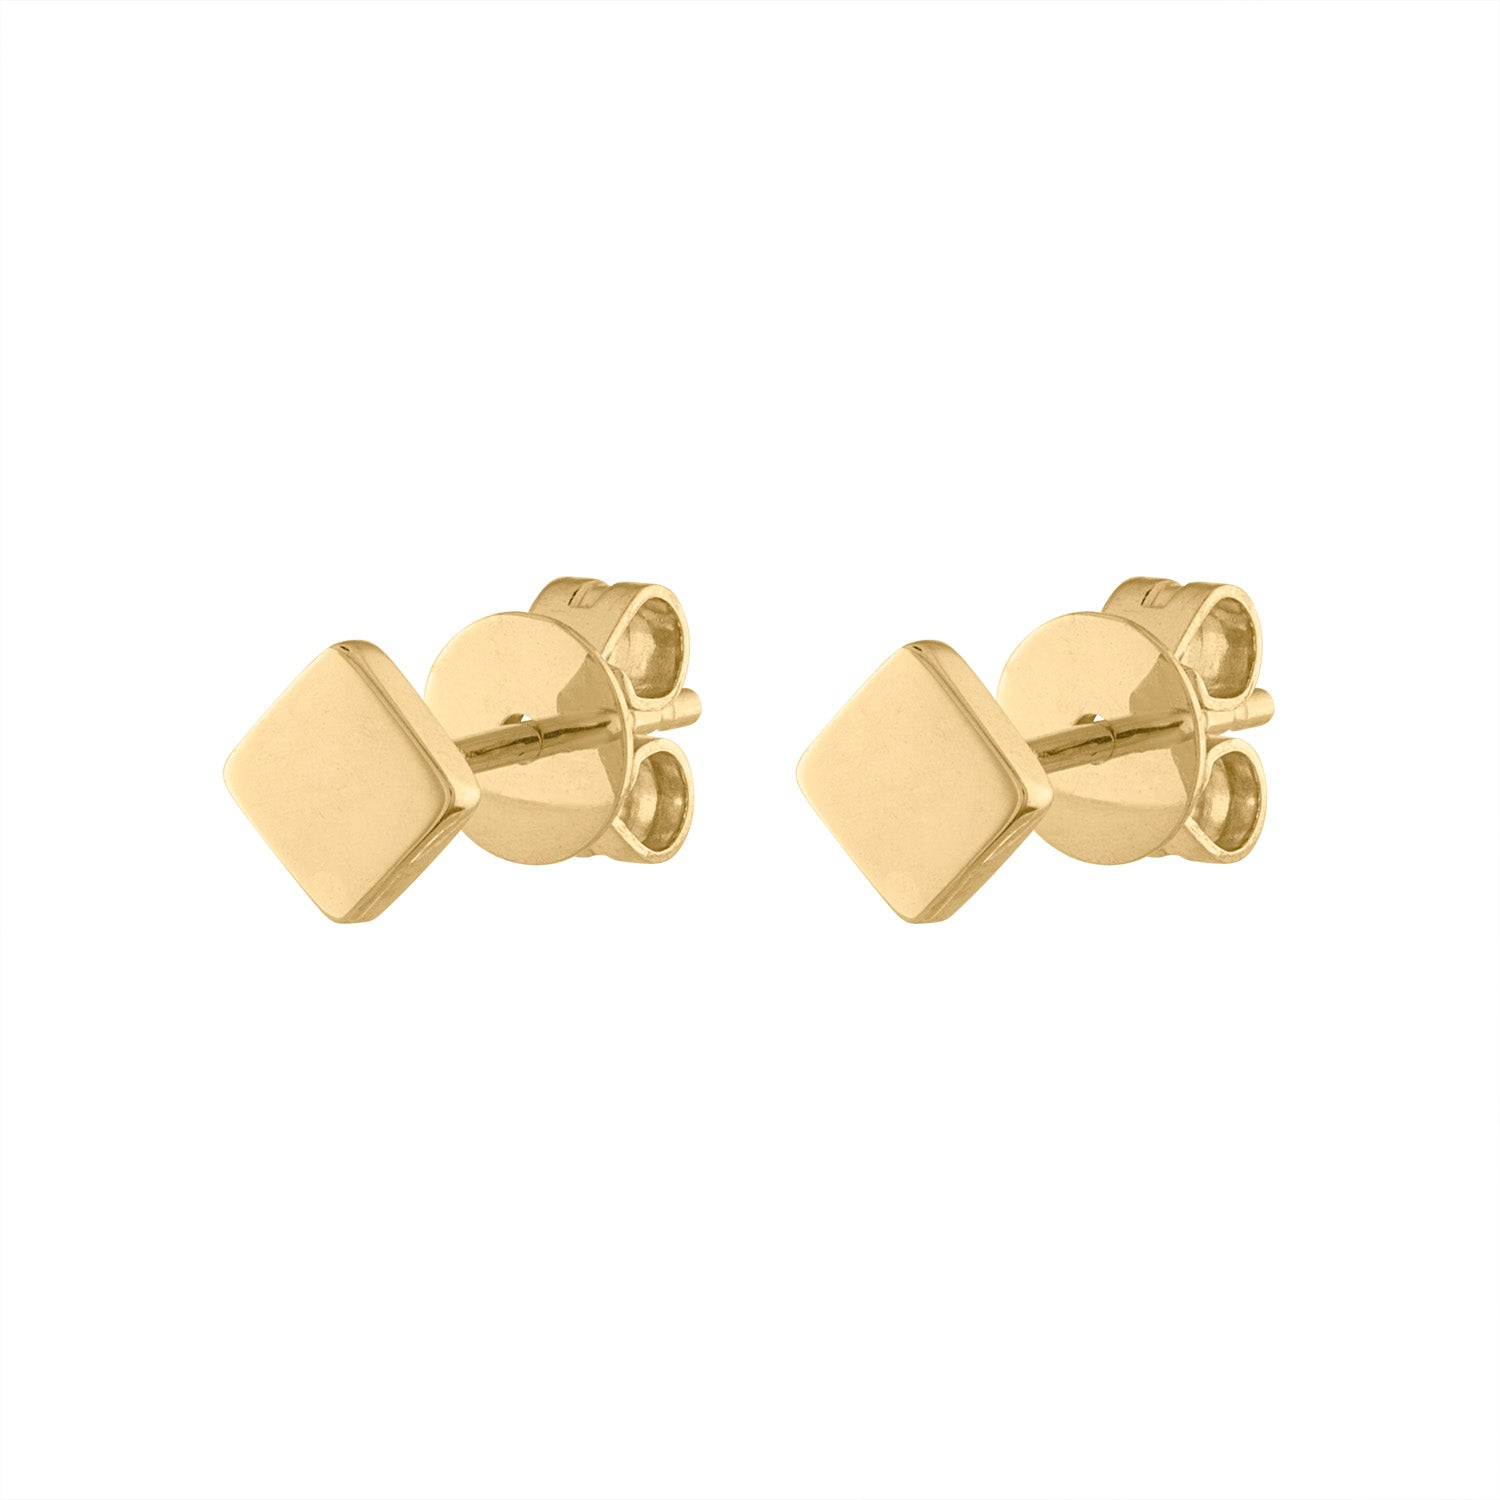 14KT GOLD PLAIN SQUARE EARRING